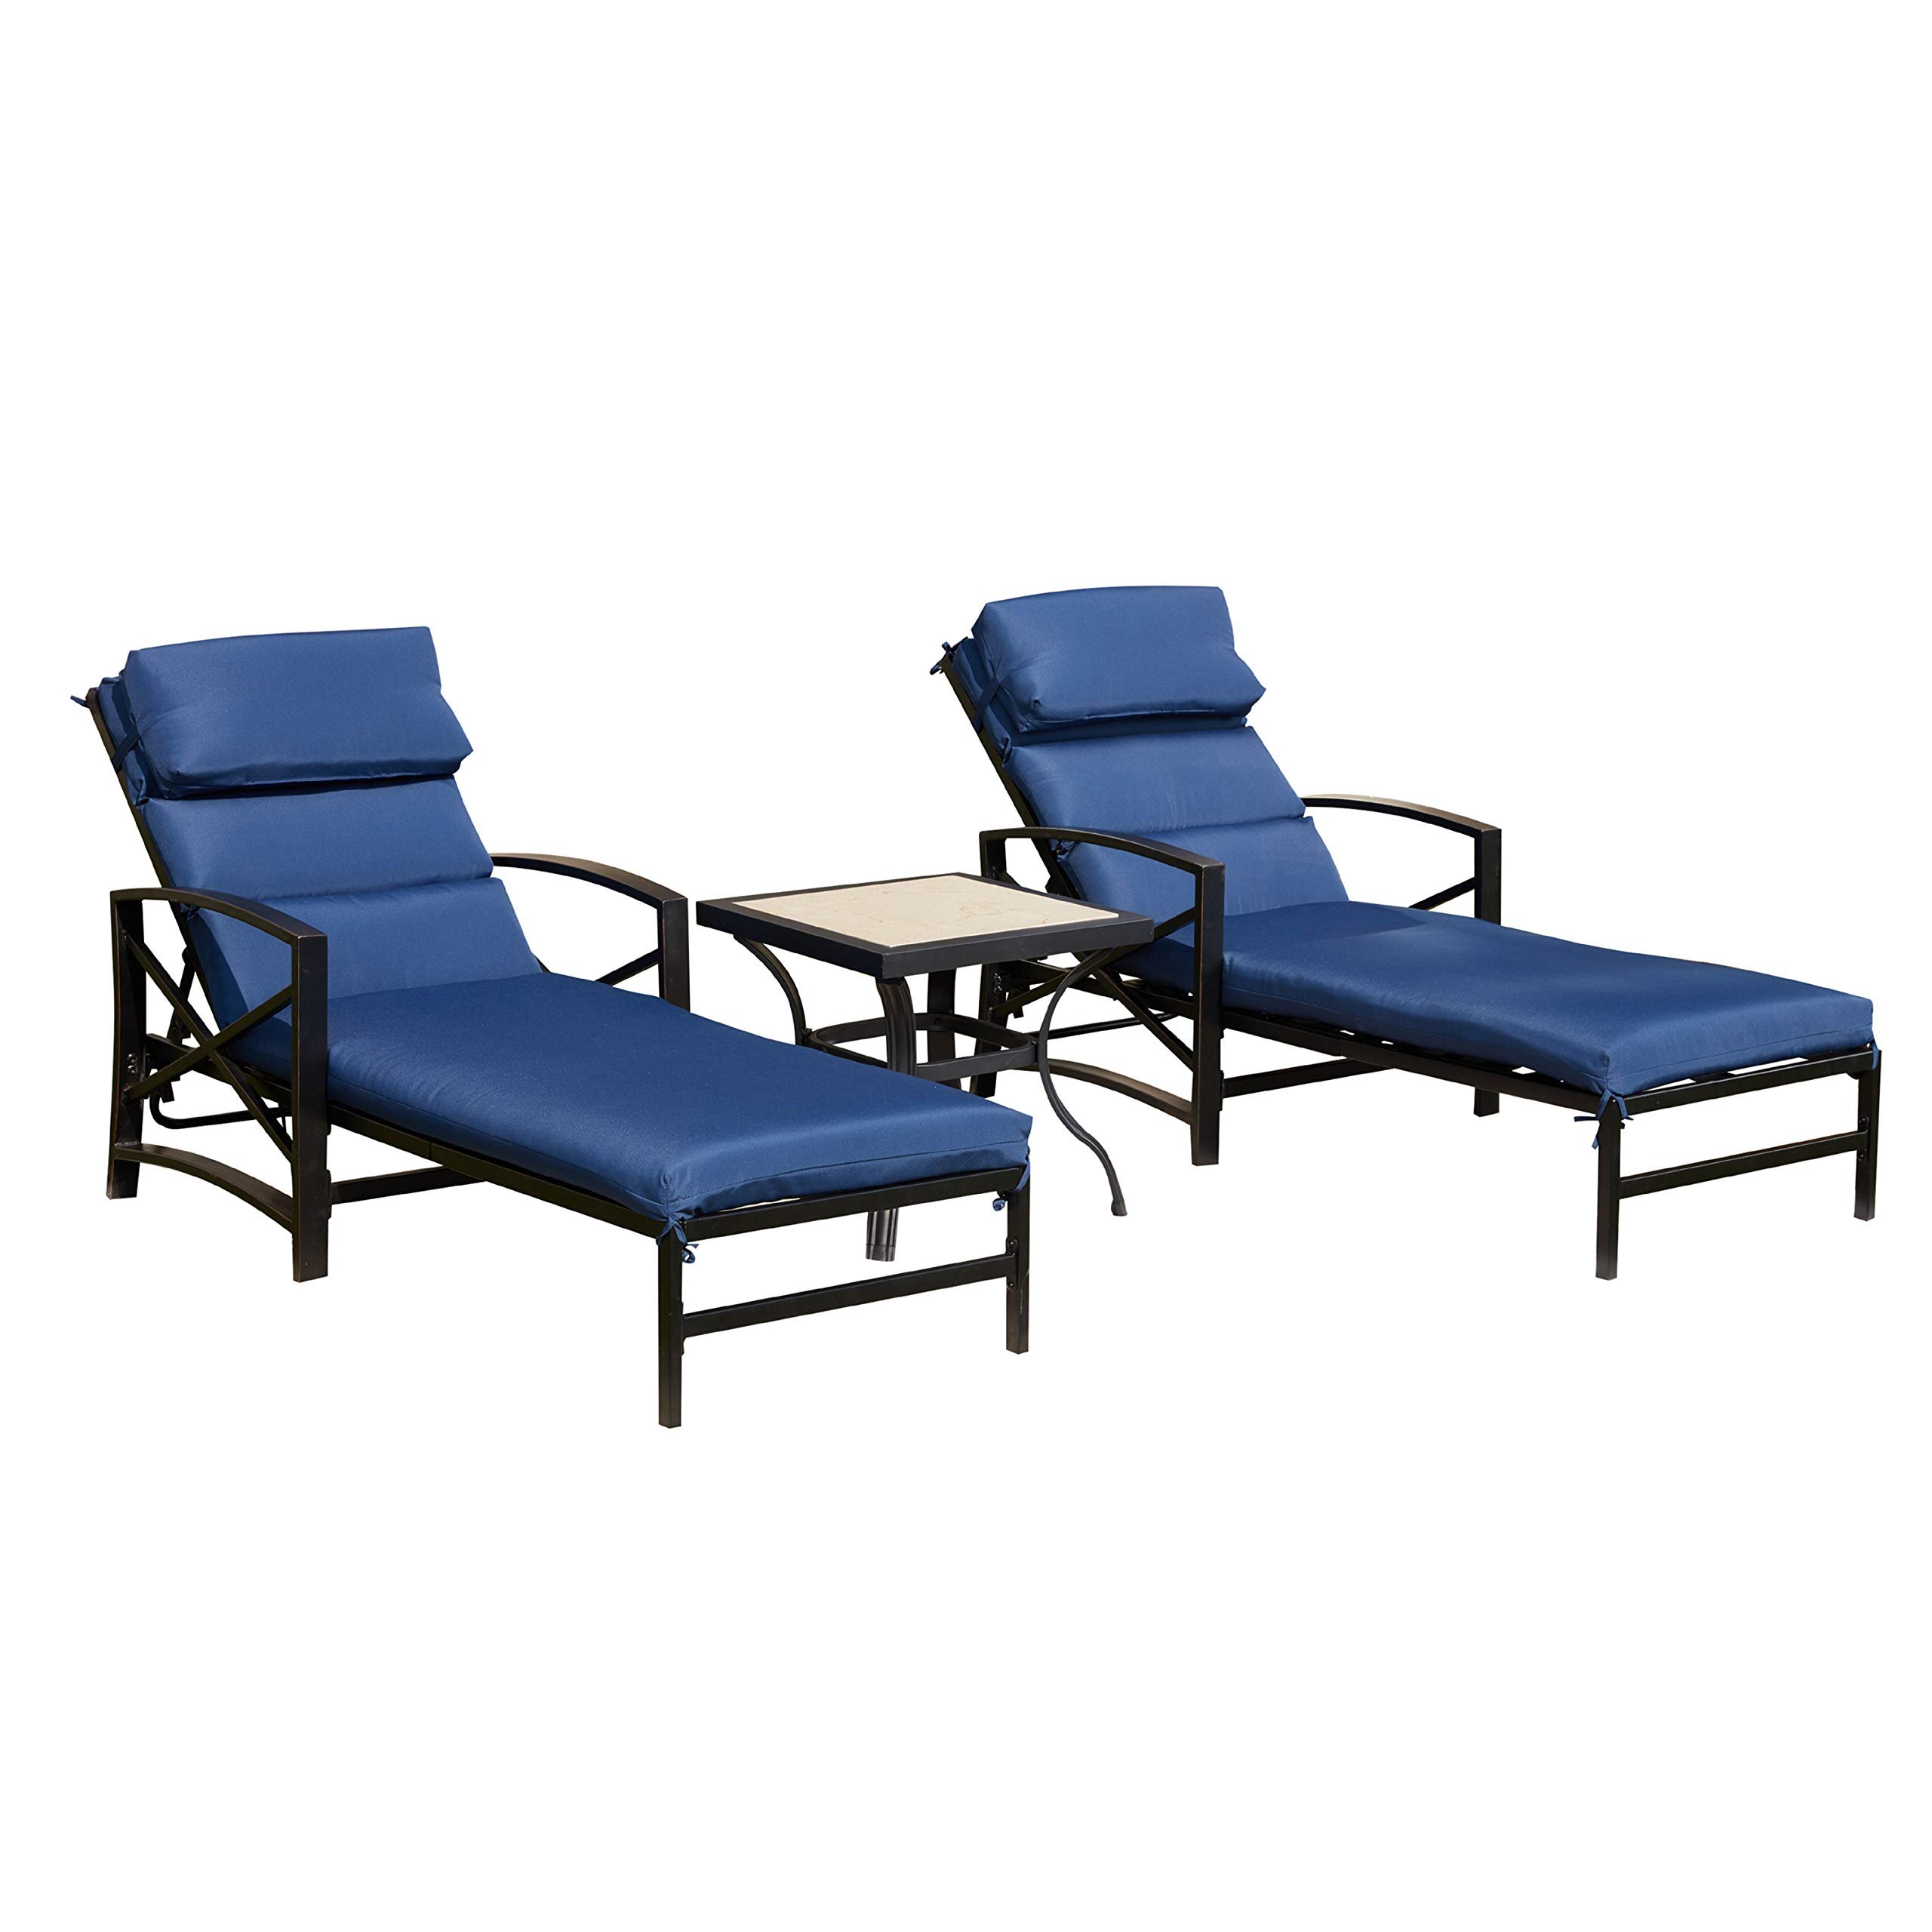 LOKATSE HOME Patio Chaise Lounge Set with Table Outdoor Metal Chairs Furniture, Blue by LOKATSE HOME